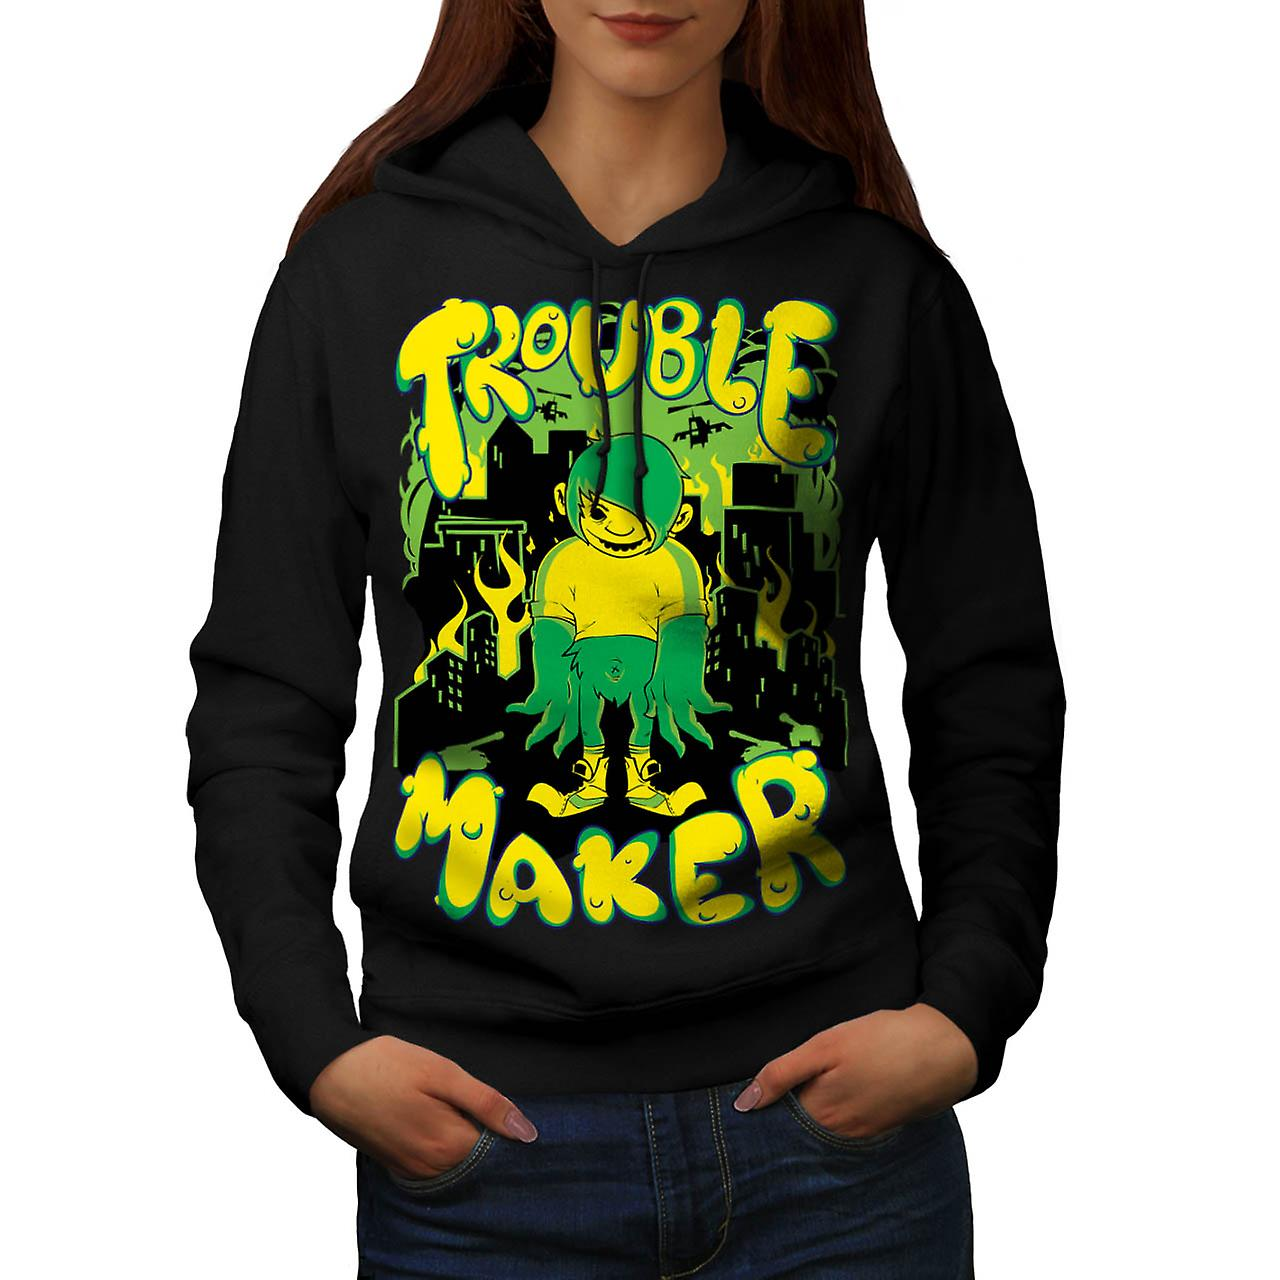 Trouble Maker Youth Chaos Problem Women Black Hoodie | Wellcoda